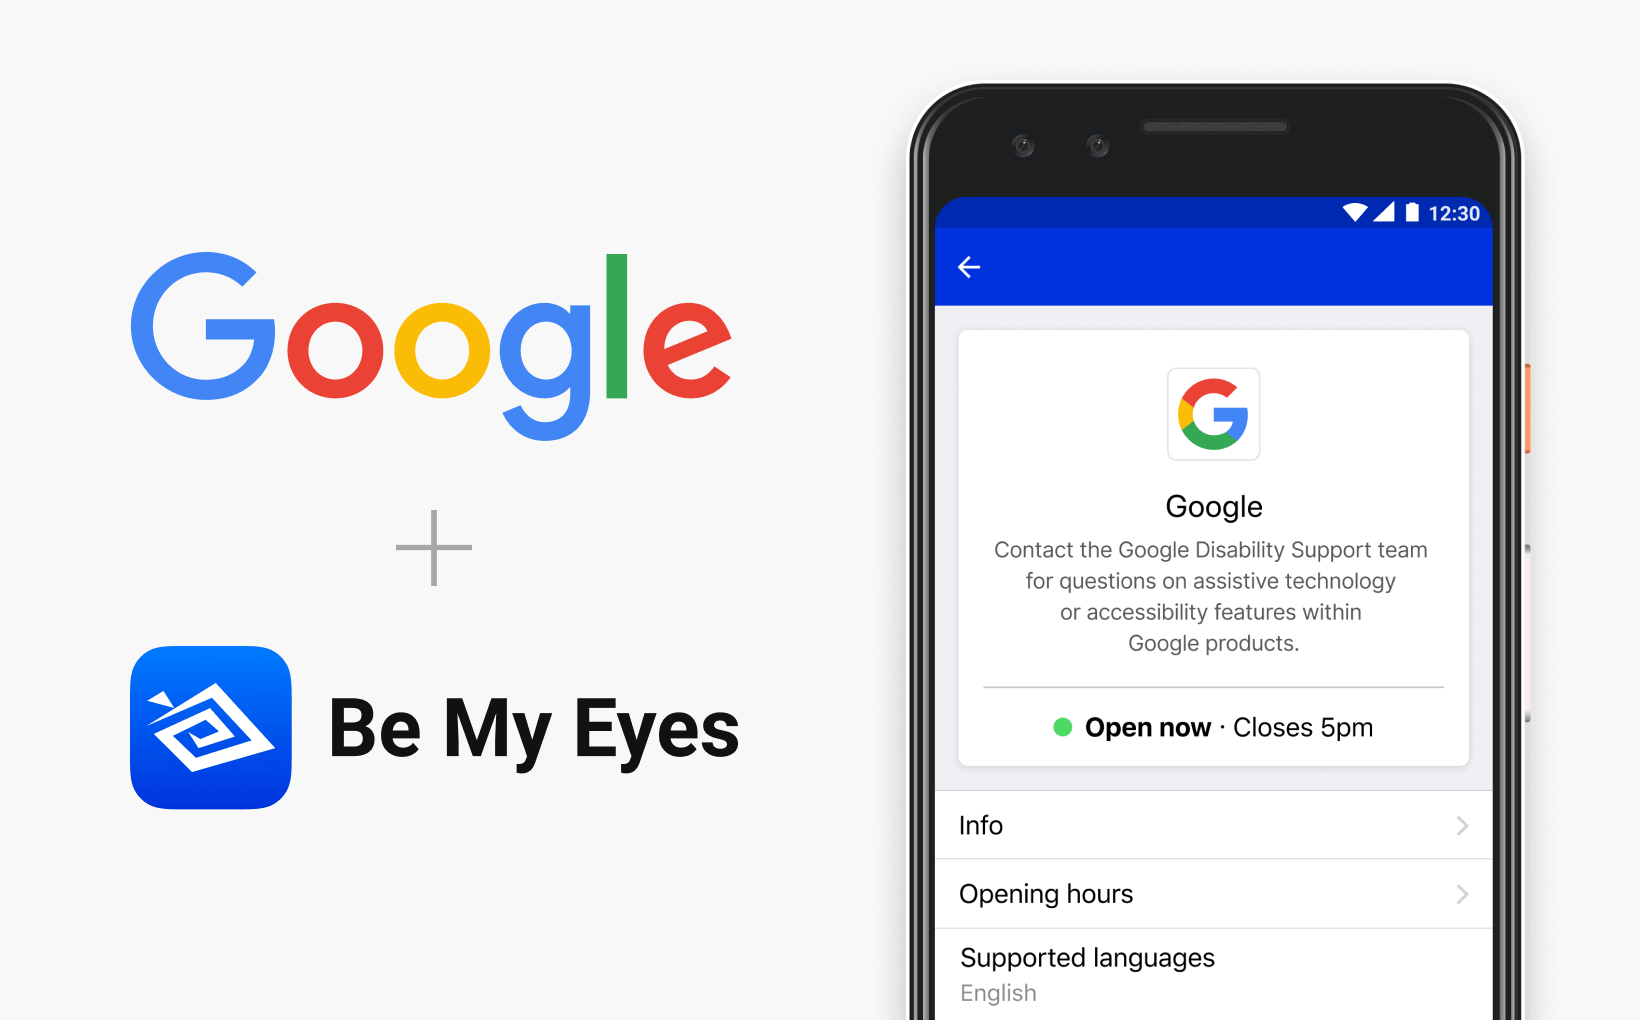 Google Disability Support is now available on Specialized Help. Image depicting a phone with Google's profile in the Be My Eyes app.